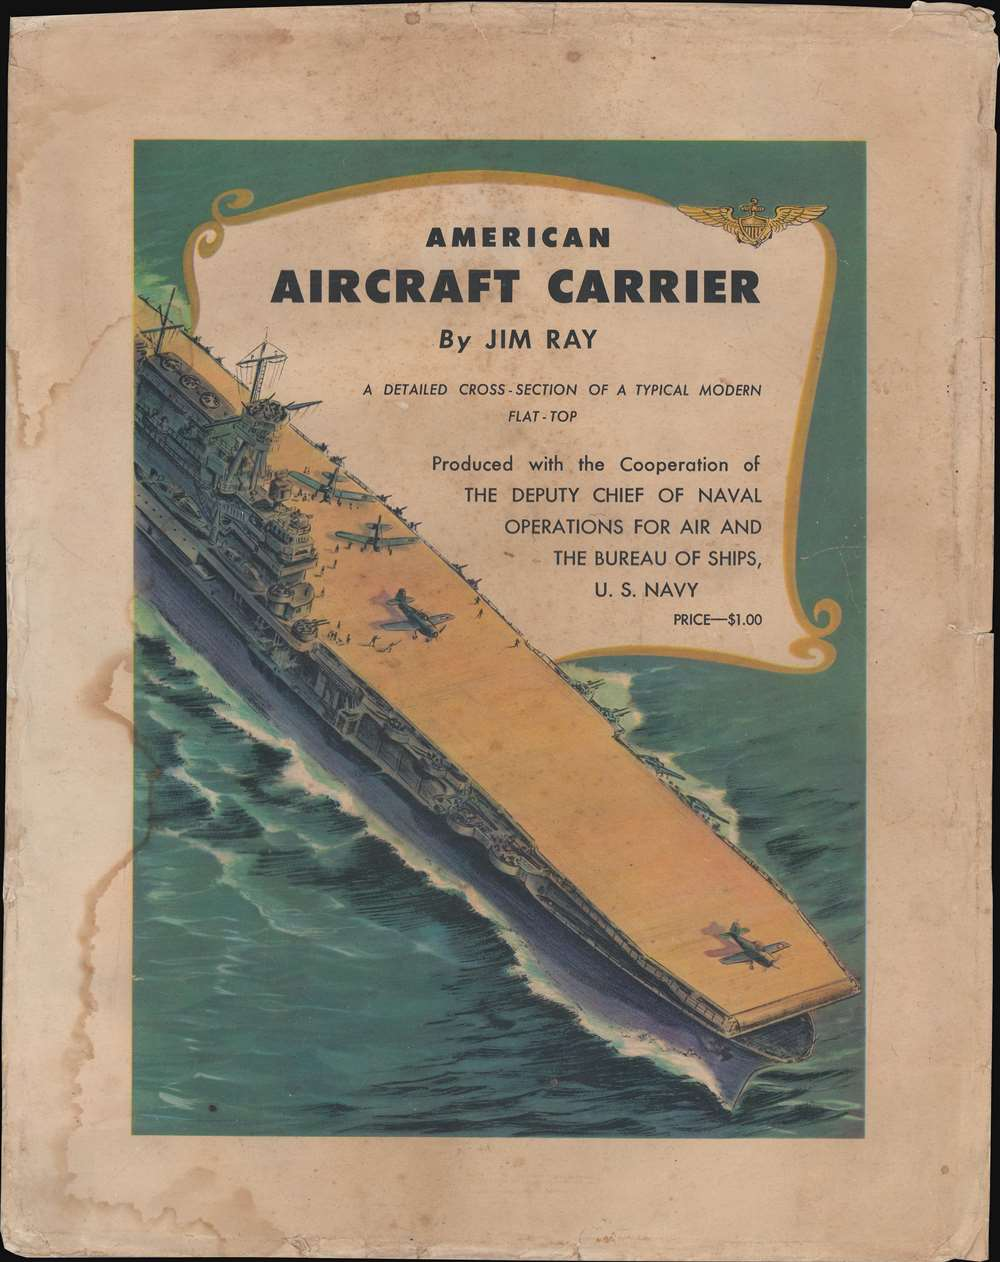 American Aircraft Carrier. A Detailed Cross-Section of a Typical Modern Flat-Top. - Alternate View 5